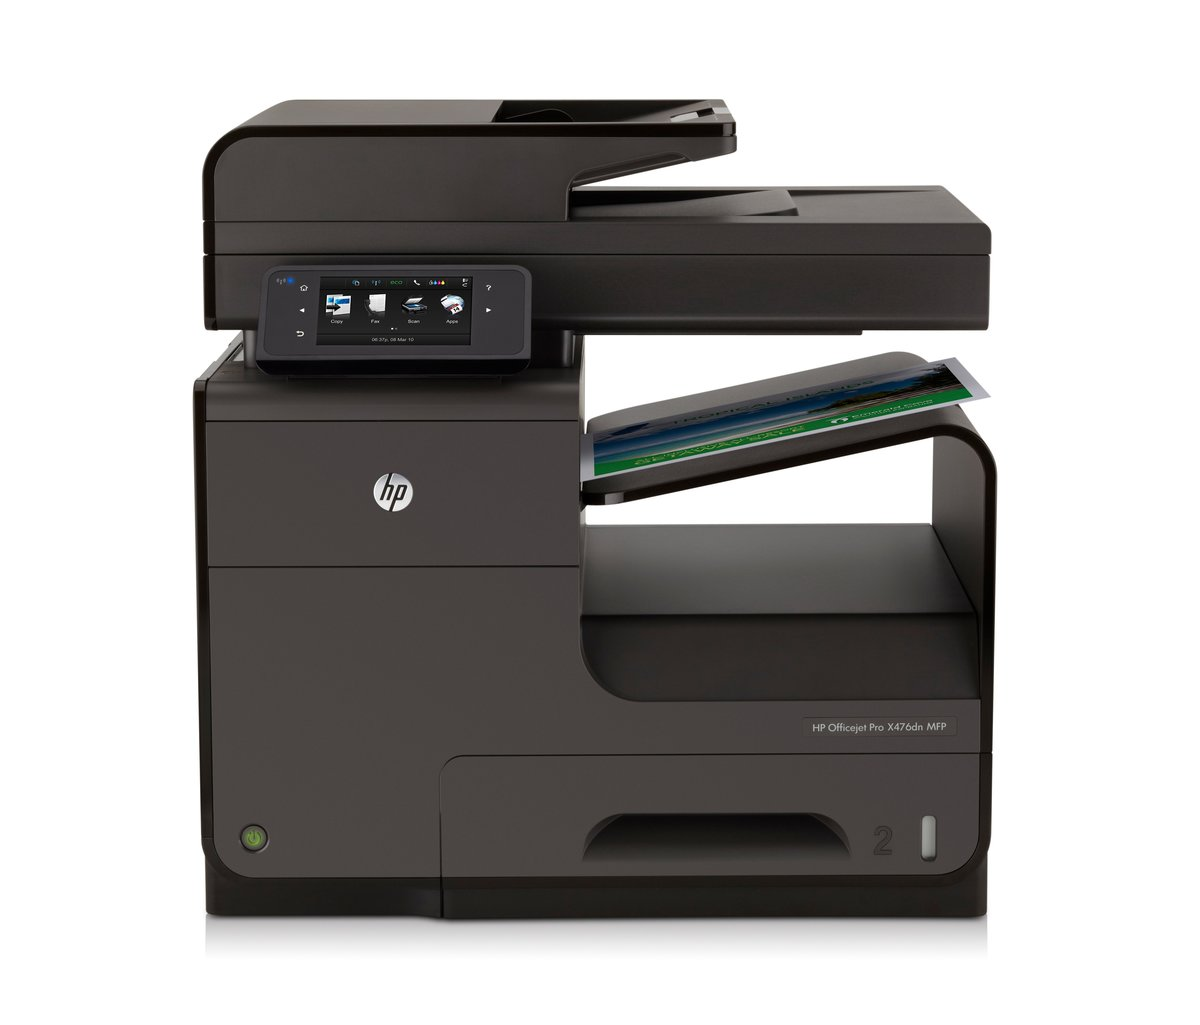 hp officejet pro 8720 user manual pdf how to troubleshooting rh overdueindustries com HP Printer User Manual HP Instruction Manuals